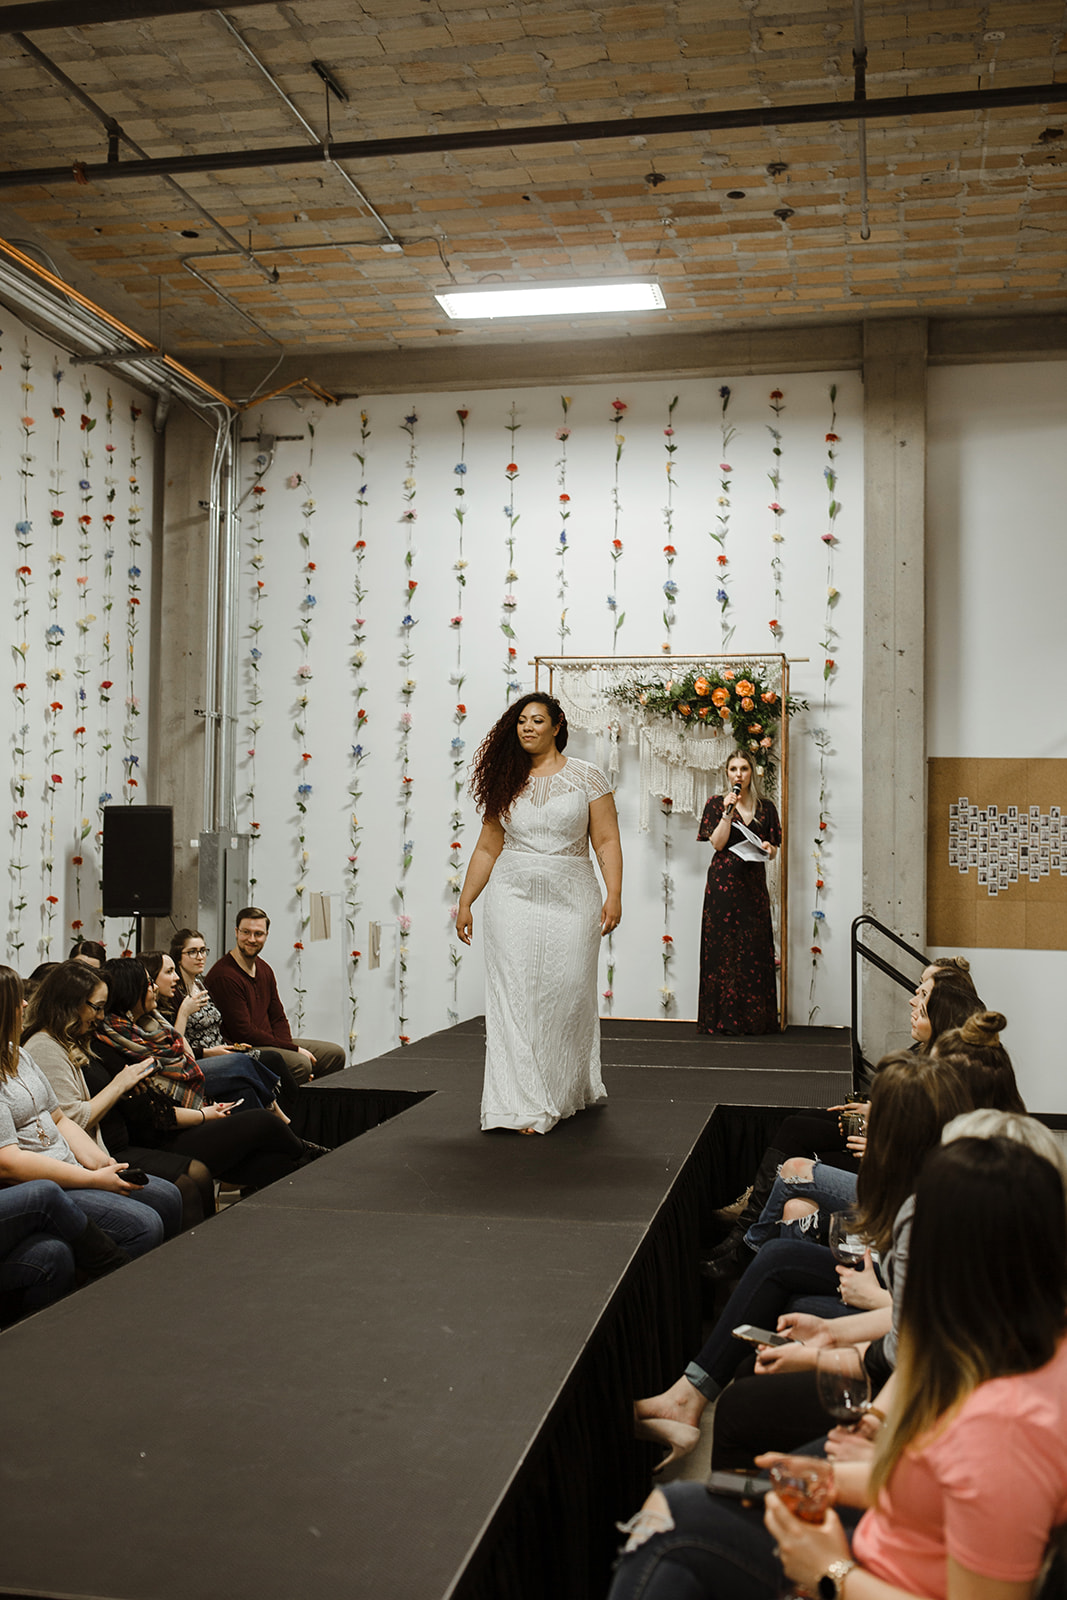 spokane wedding dress fashion show emcee bride model